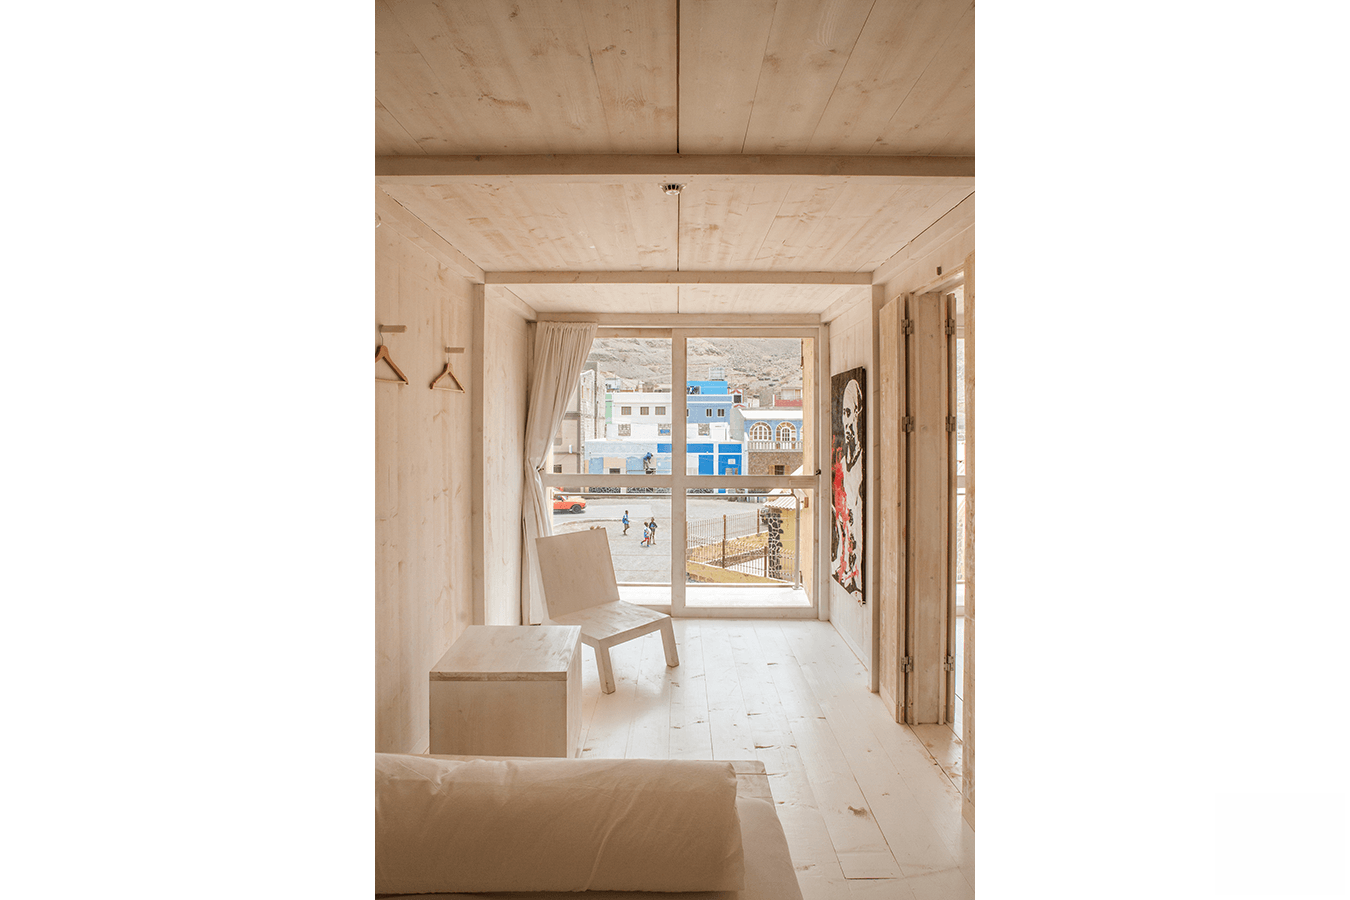 acquiles_eco_hotel_04_Ramos_Castellano_Architects_Room_1.png